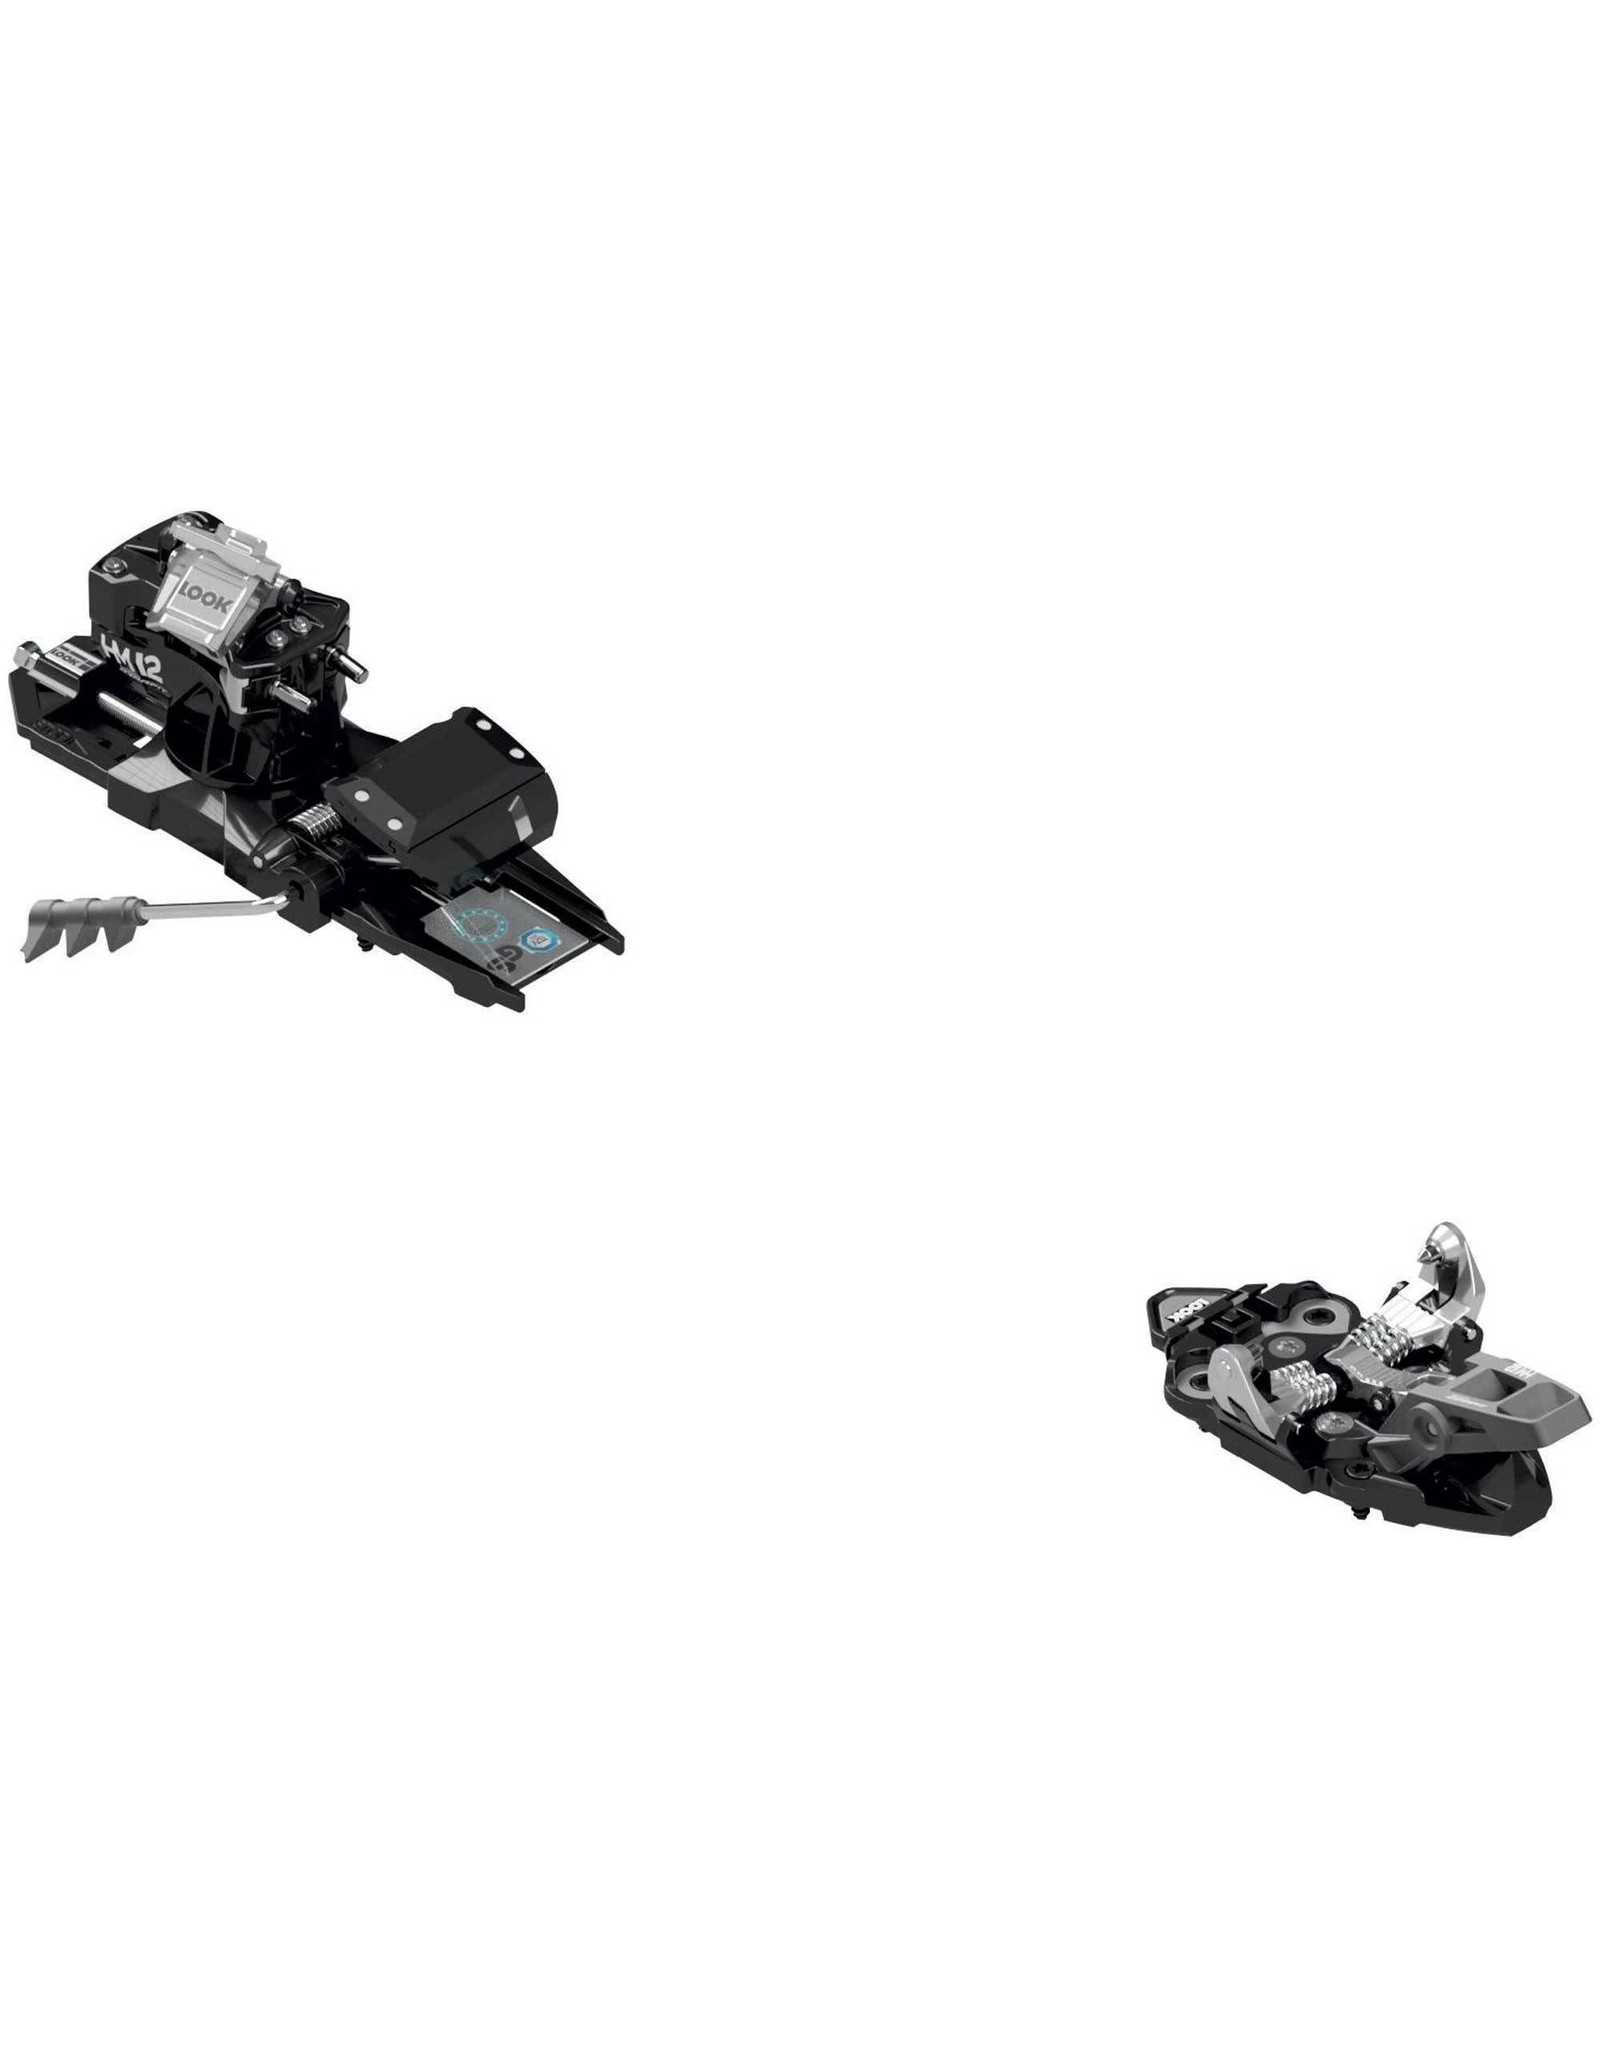 LOOK HM ROTATION 12 D90 SR 20 0TU SKI TOURING BINDINGS